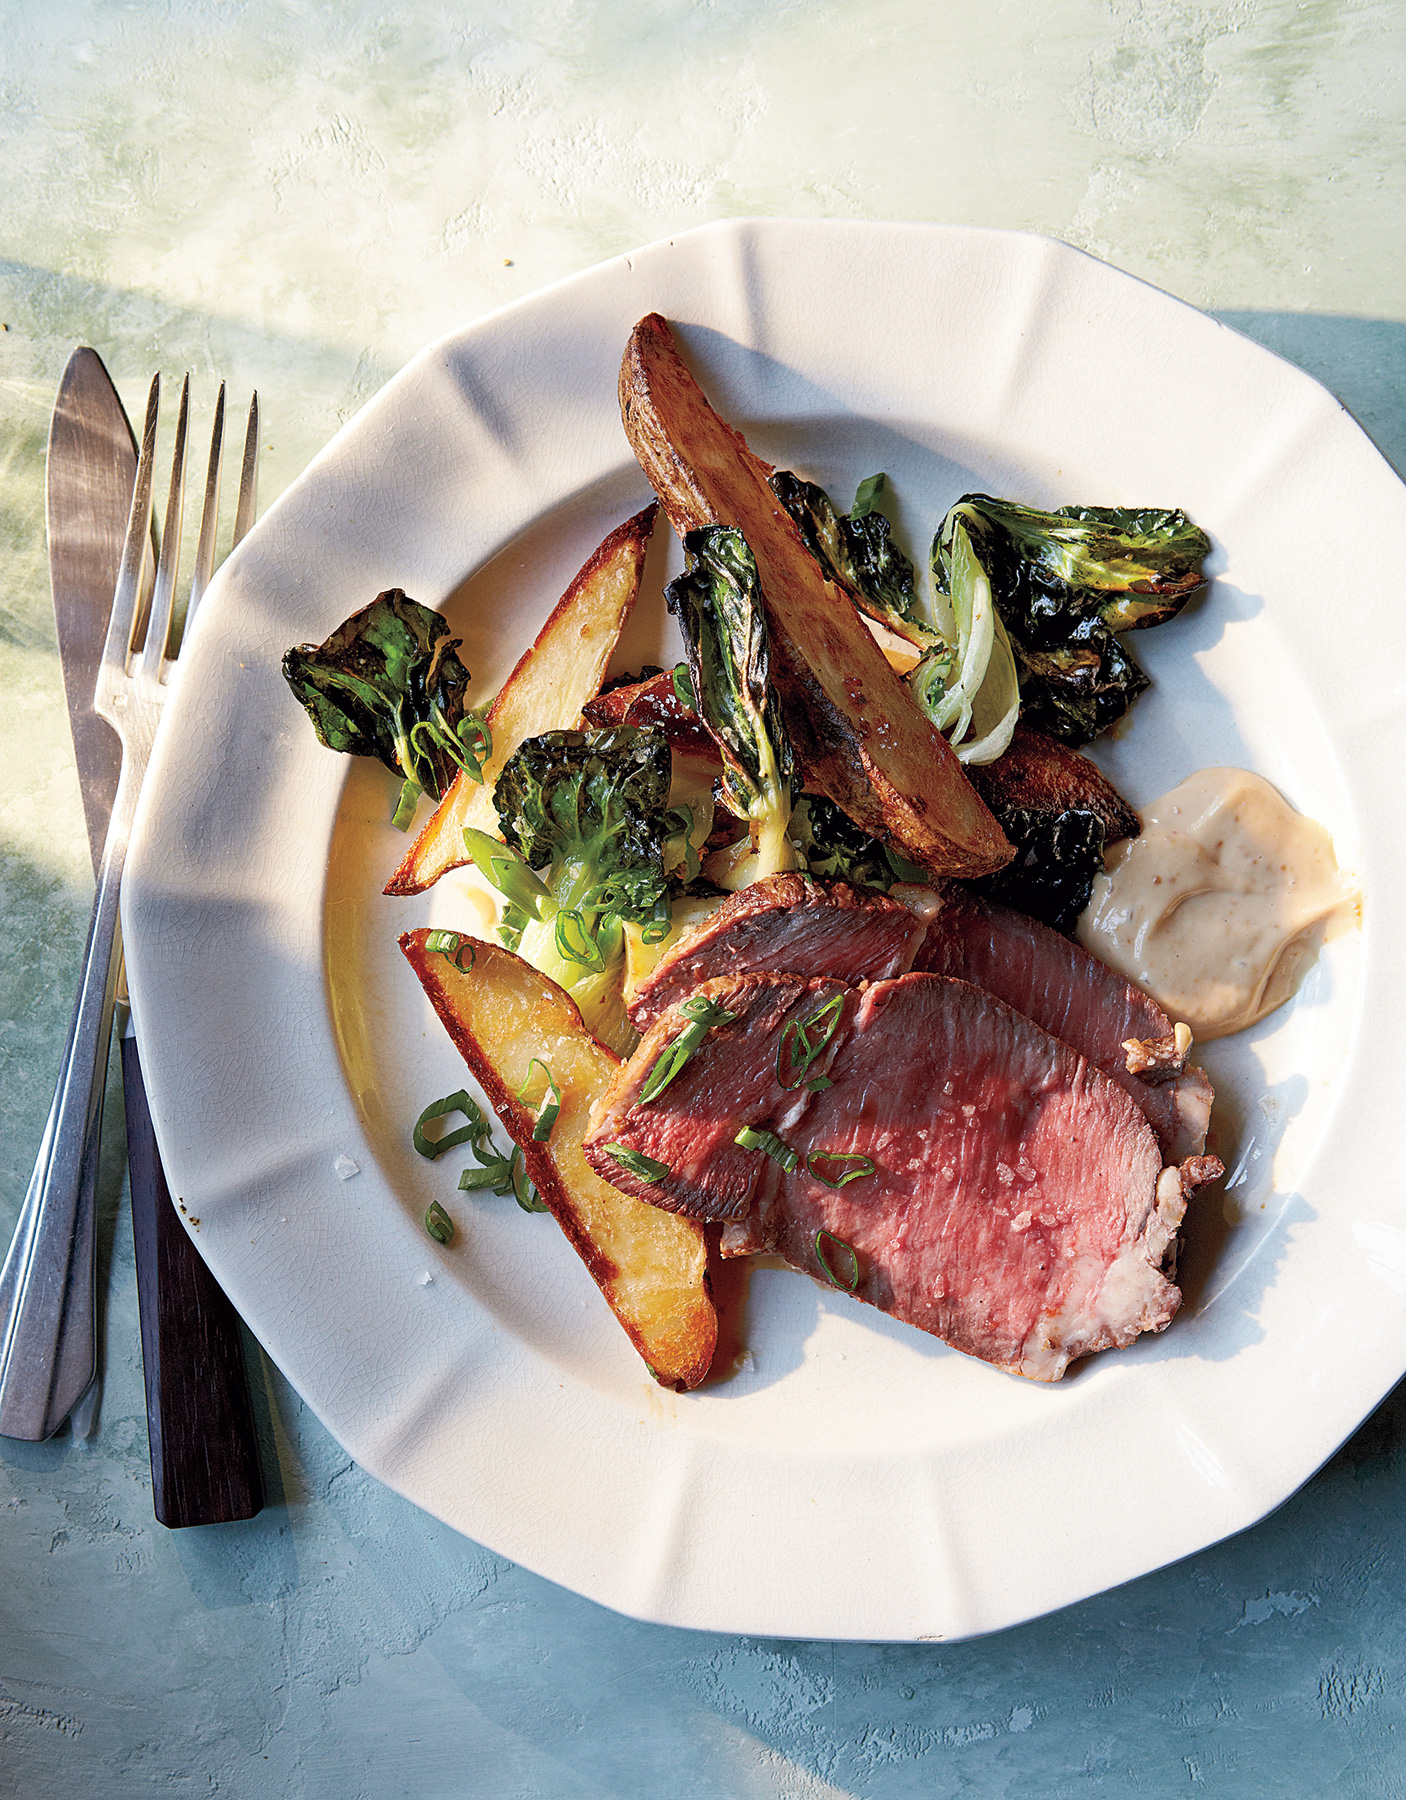 Roast Beef With Potatoes, Bok Choy, and Miso Mayo